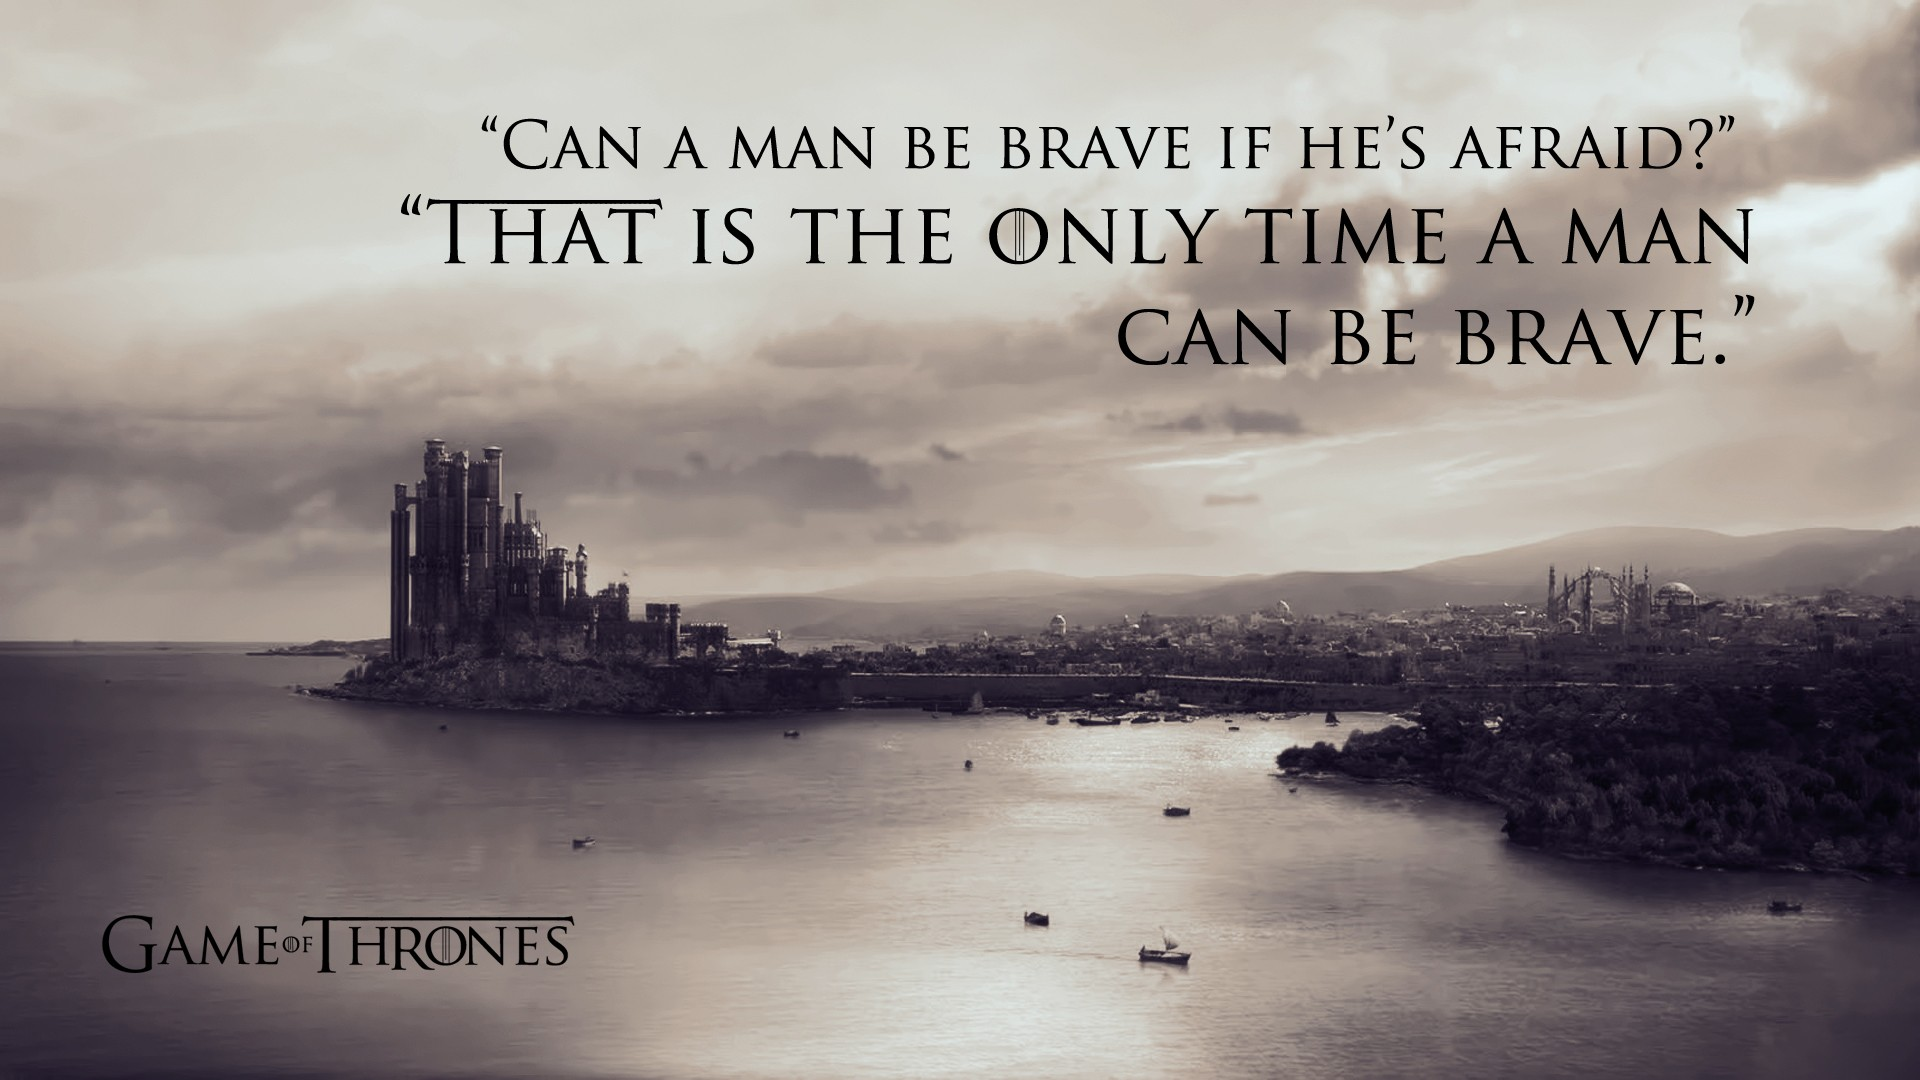 Game Of Thrones Quote Wallpaper wallpapers55com   Best Wallpapers 1920x1080